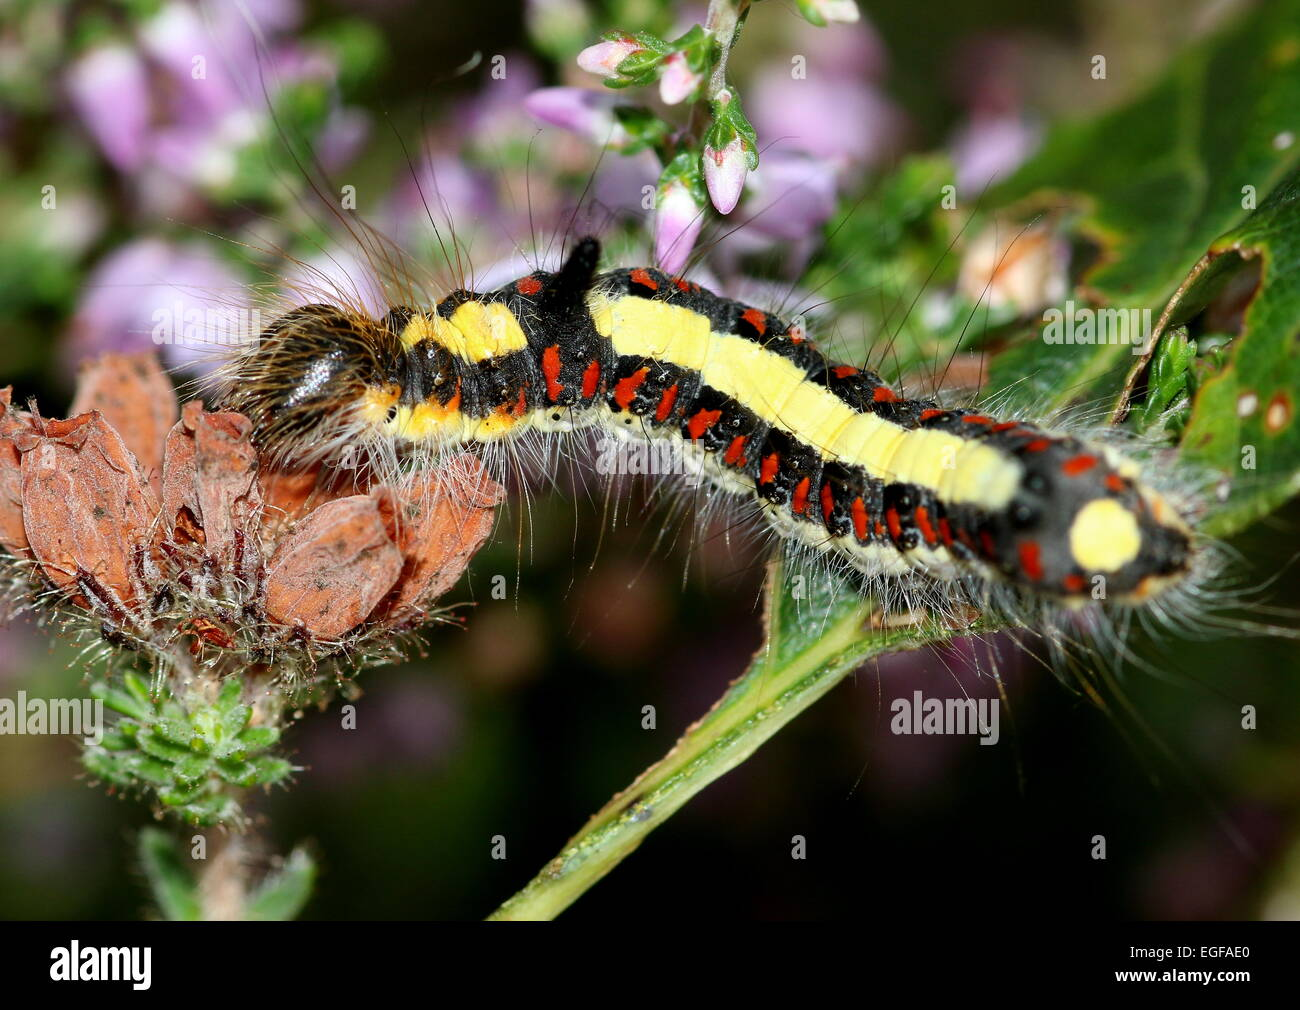 Colourful caterpillar of the European Grey Dagger moth (Acronicta psi), seen here on common heather flowers - Stock Image